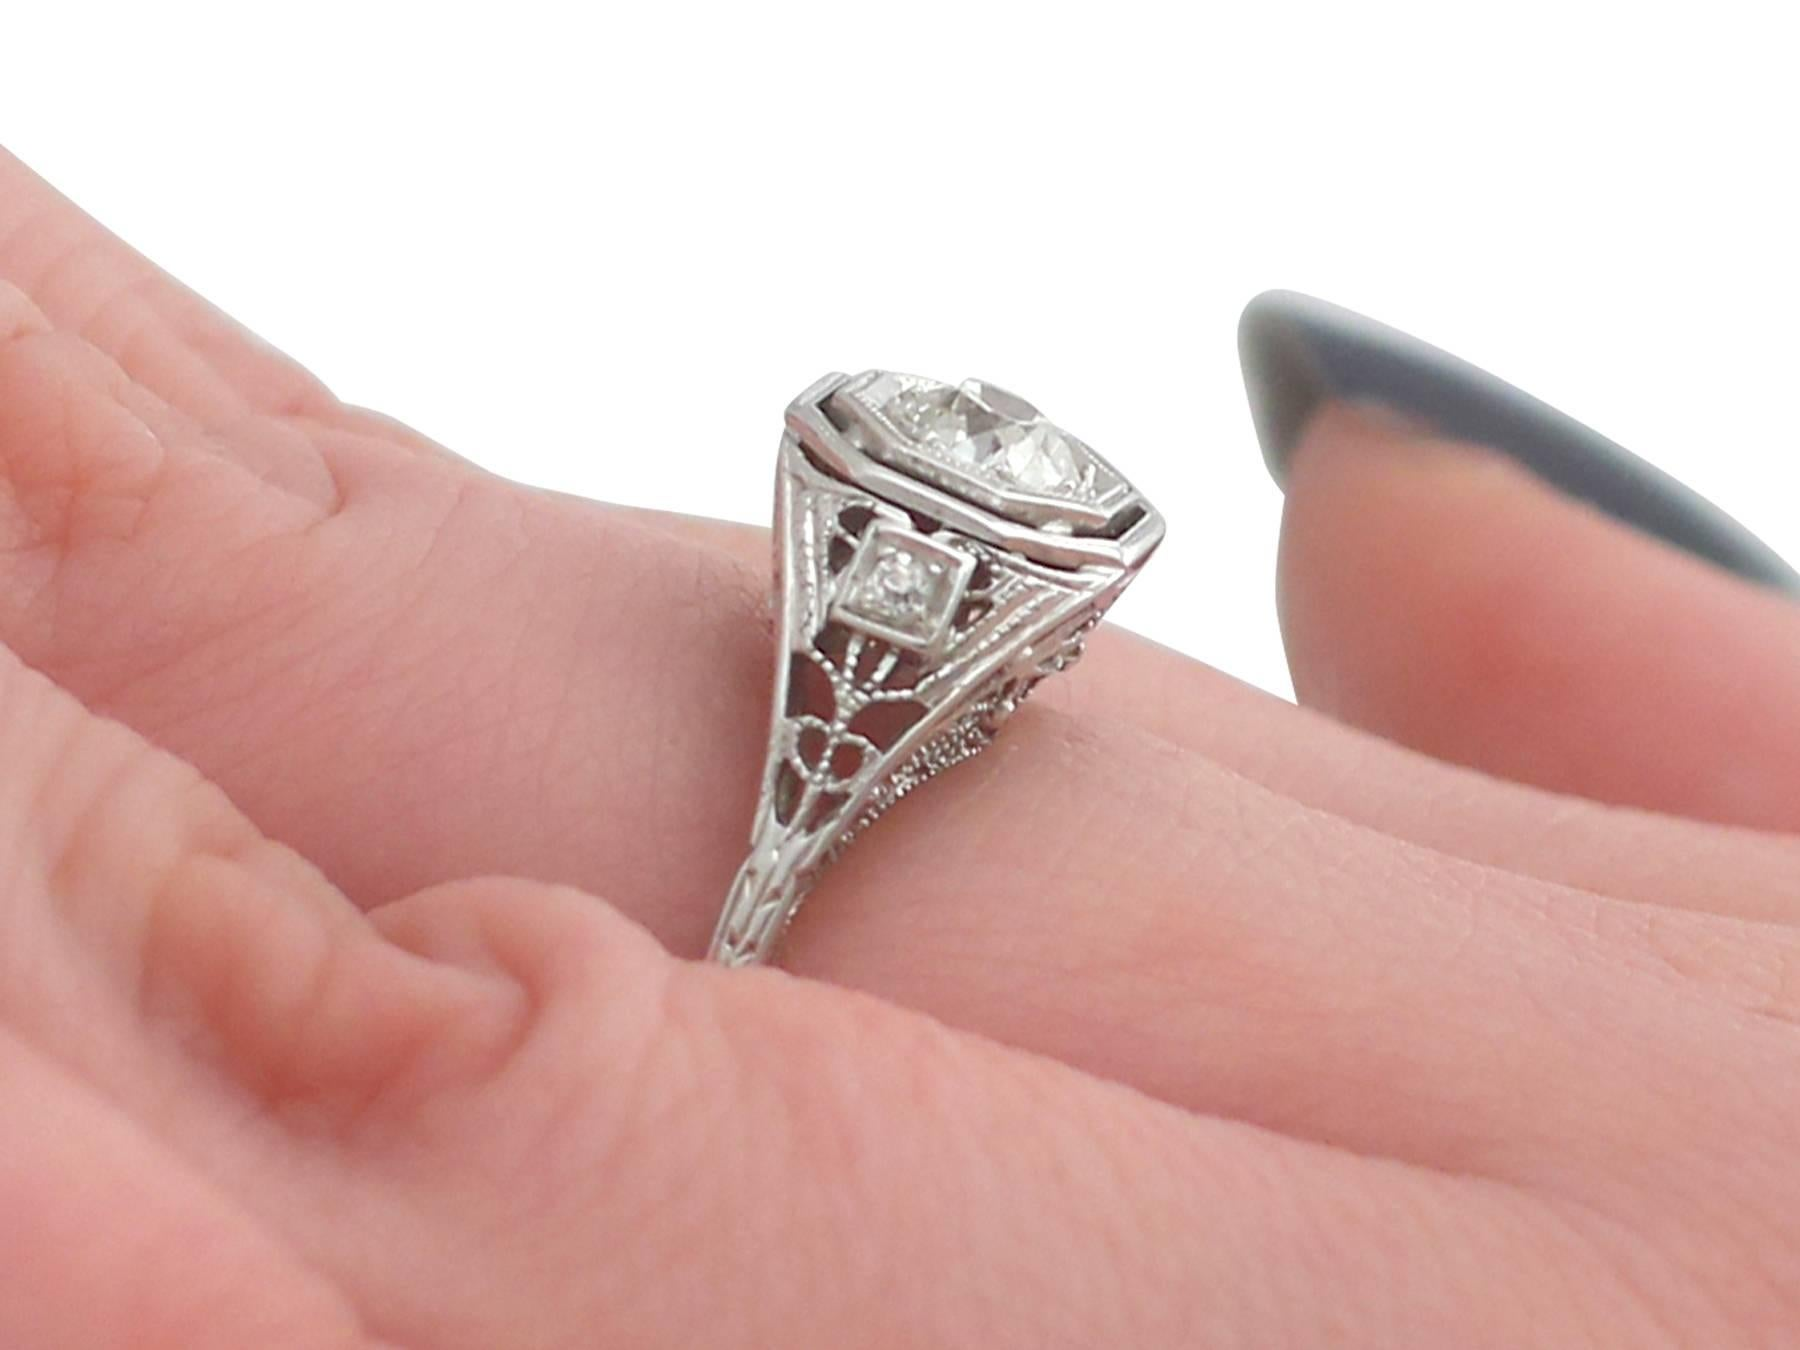 Antique 1920s Diamond and White Gold Solitaire Ring For Sale at 1stdibs